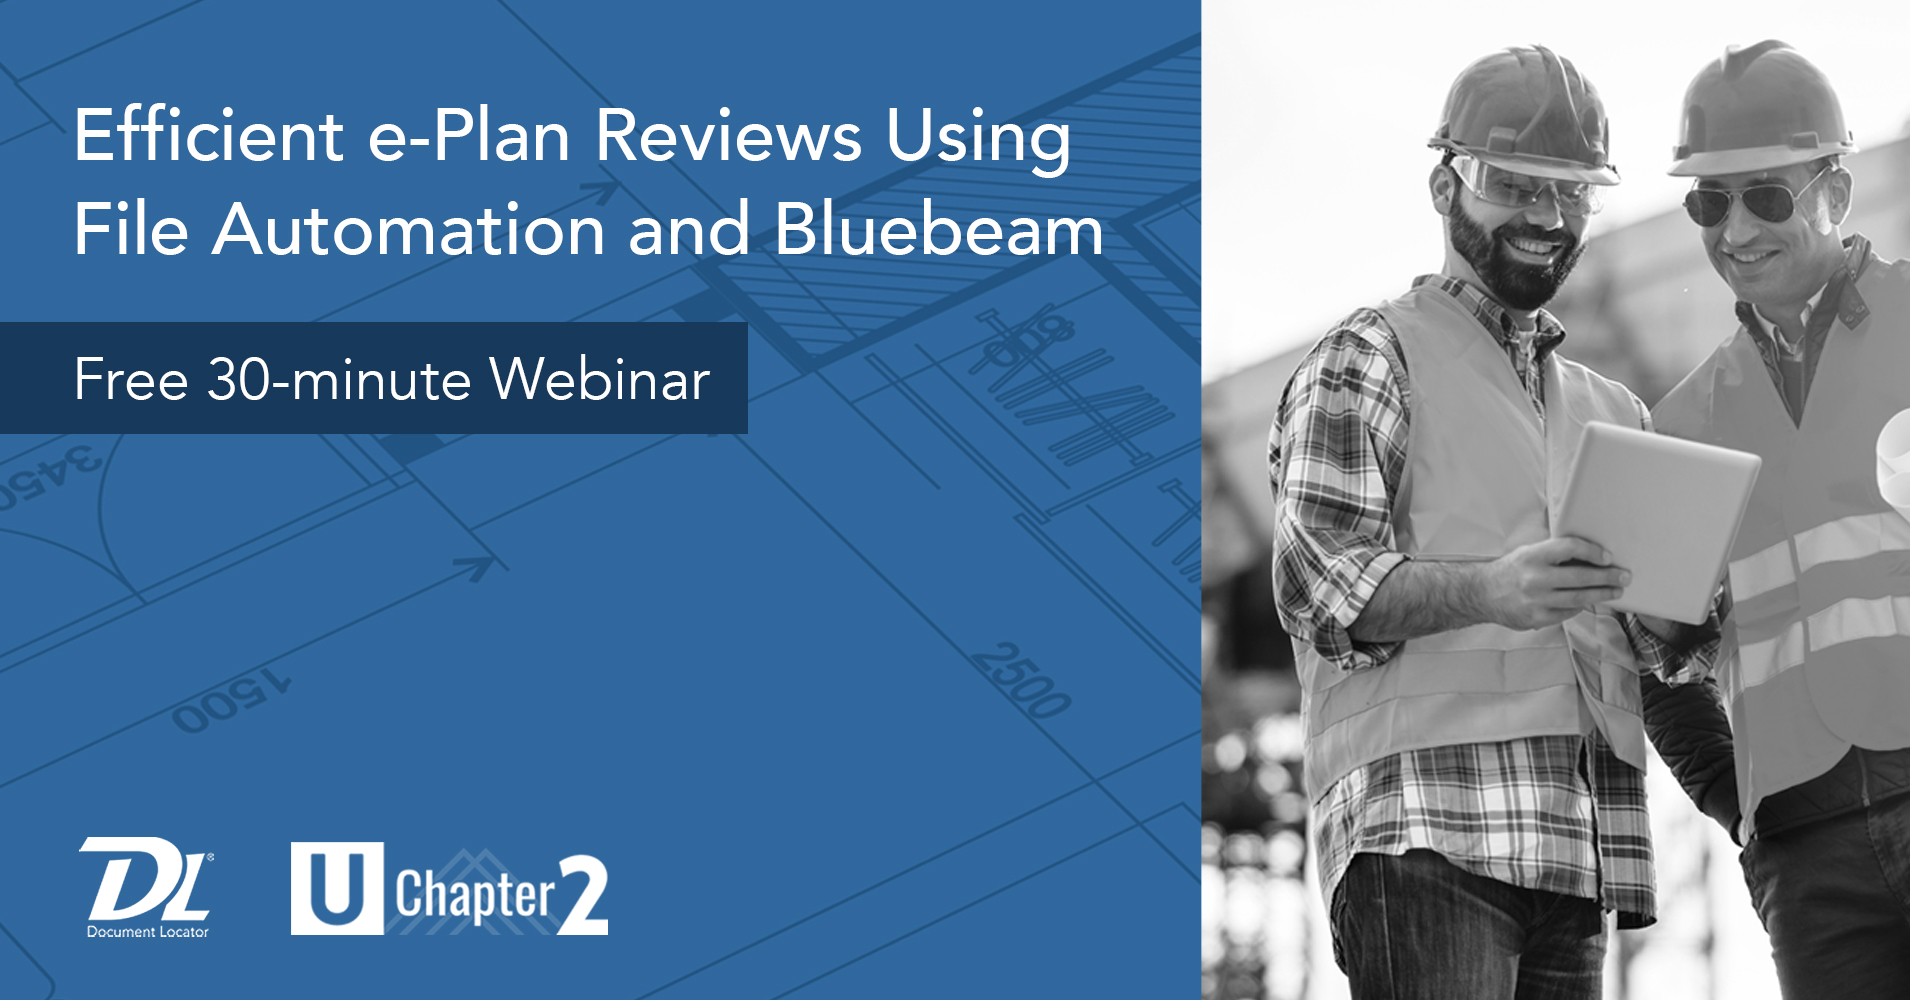 Webinar: Efficient e-Plan Reviews Using File Automation and Bluebeam